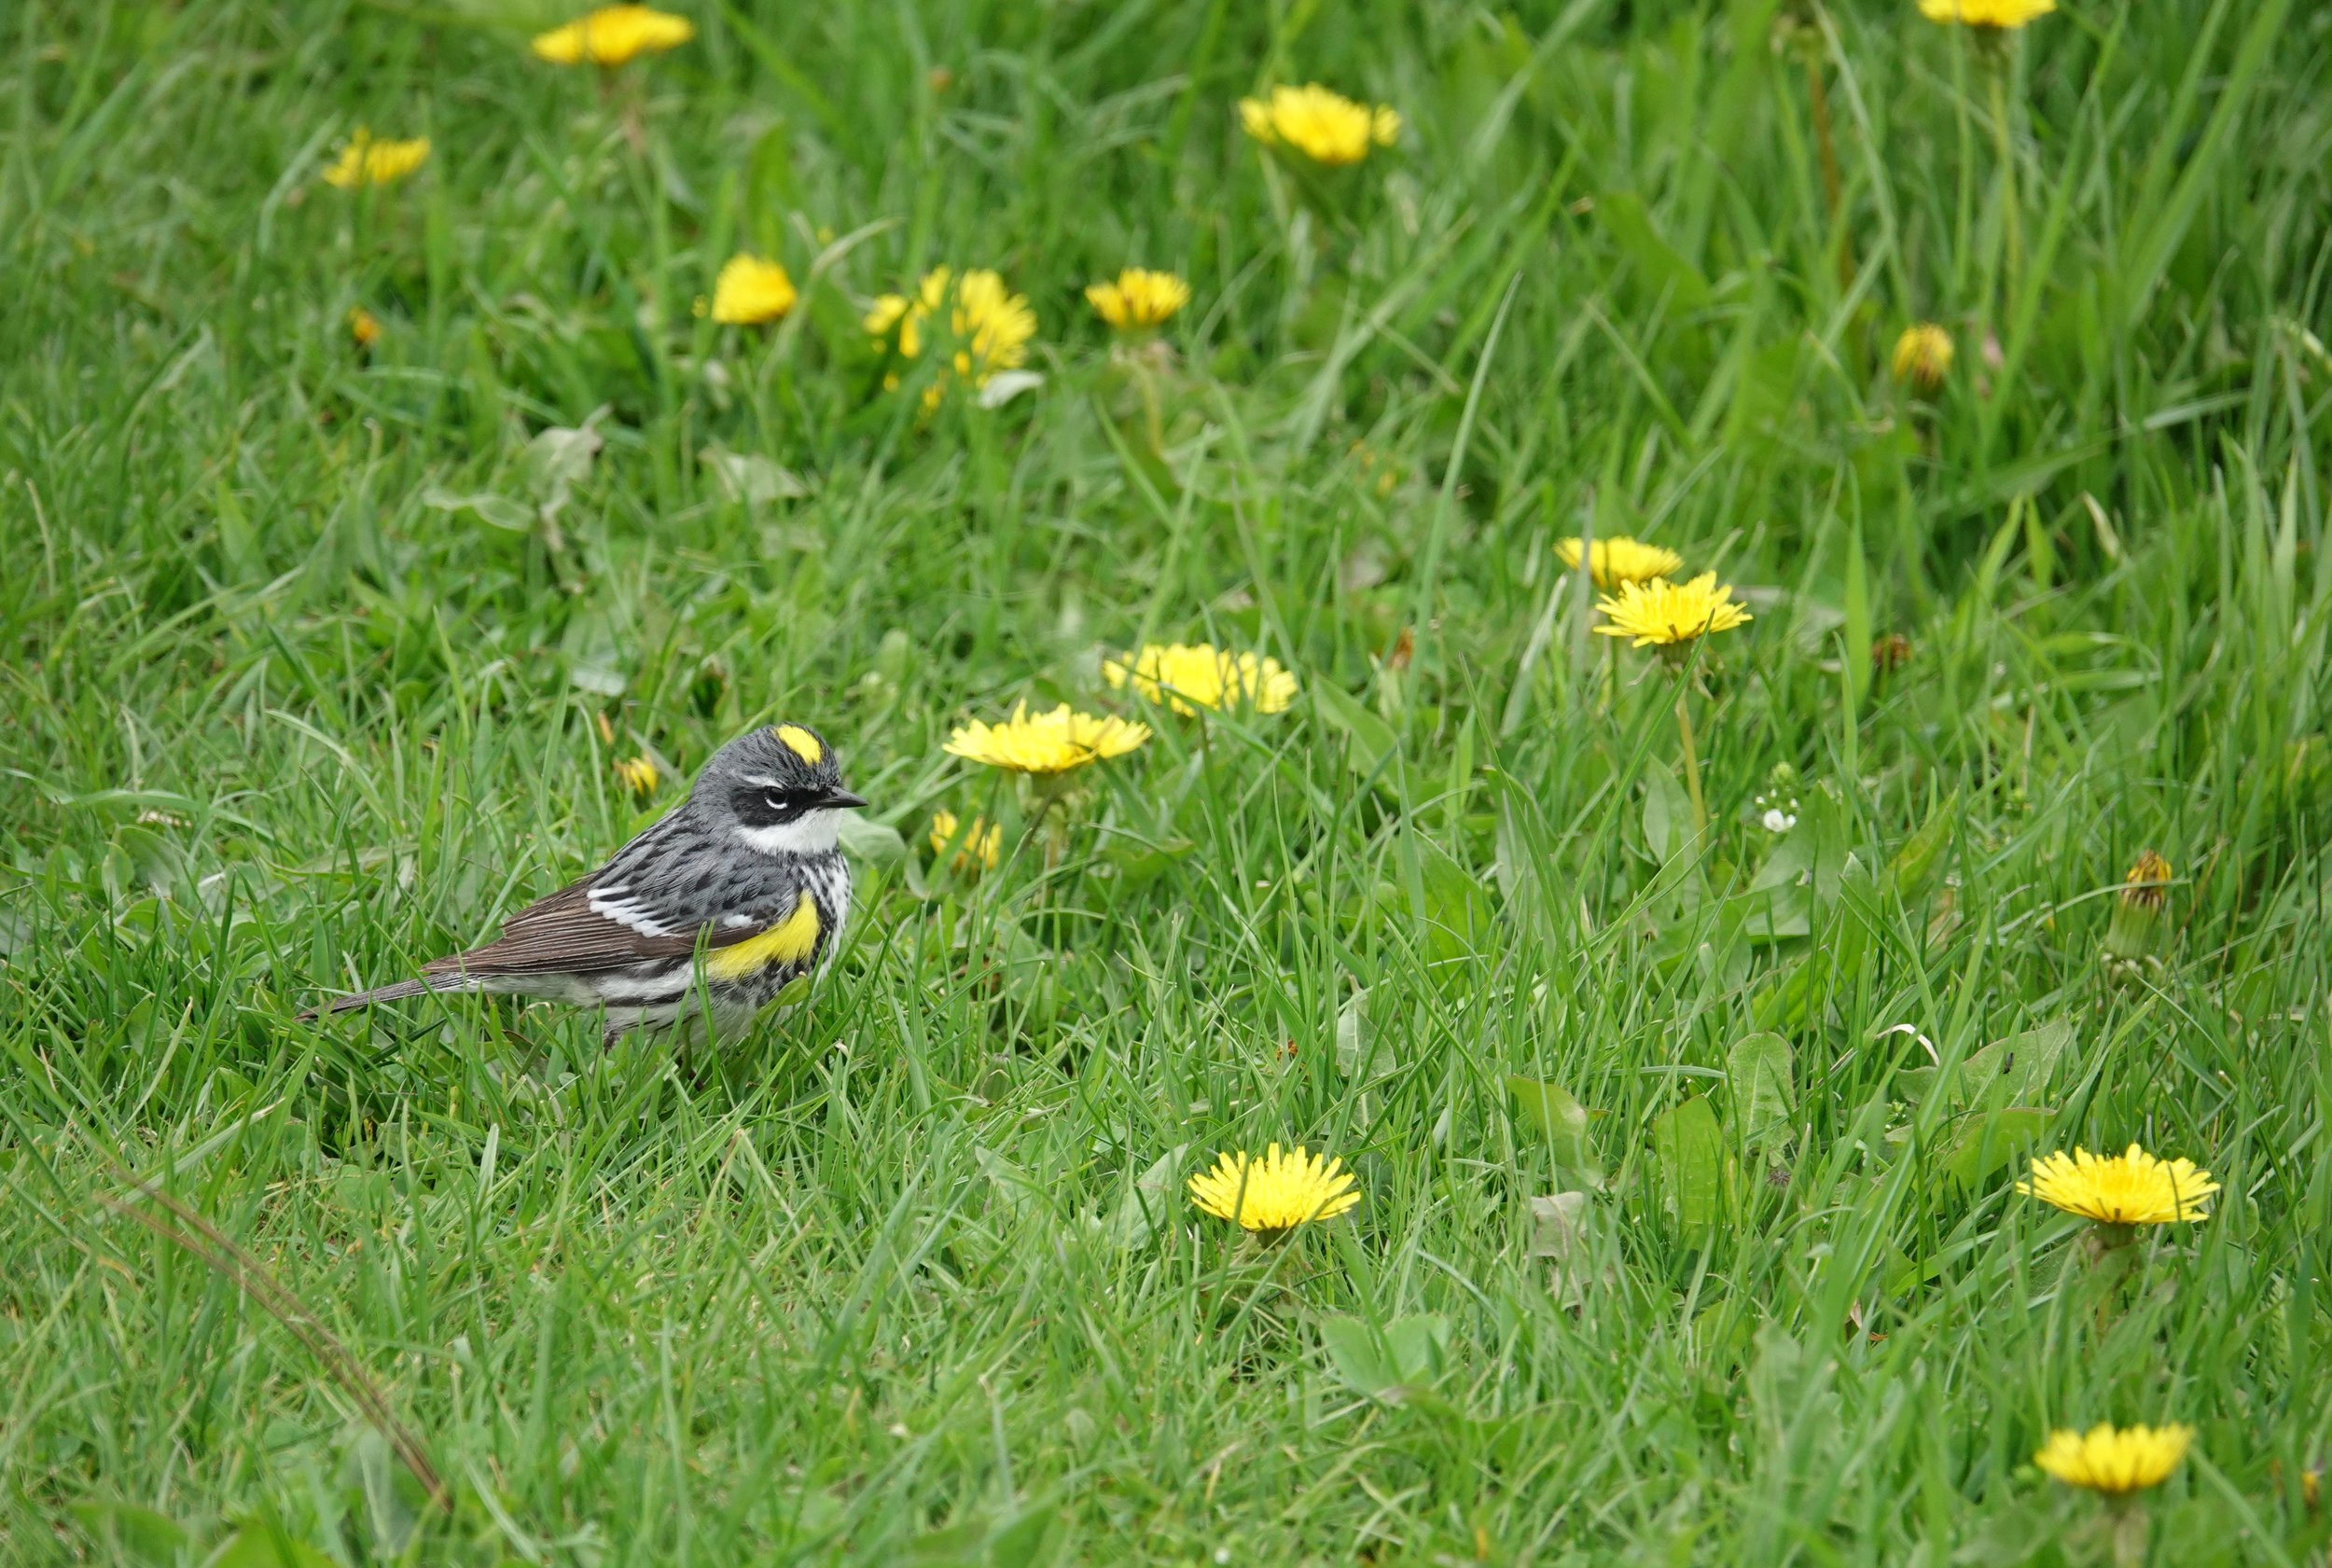 A yellow-rumped warbler looks at home with the dandelions.